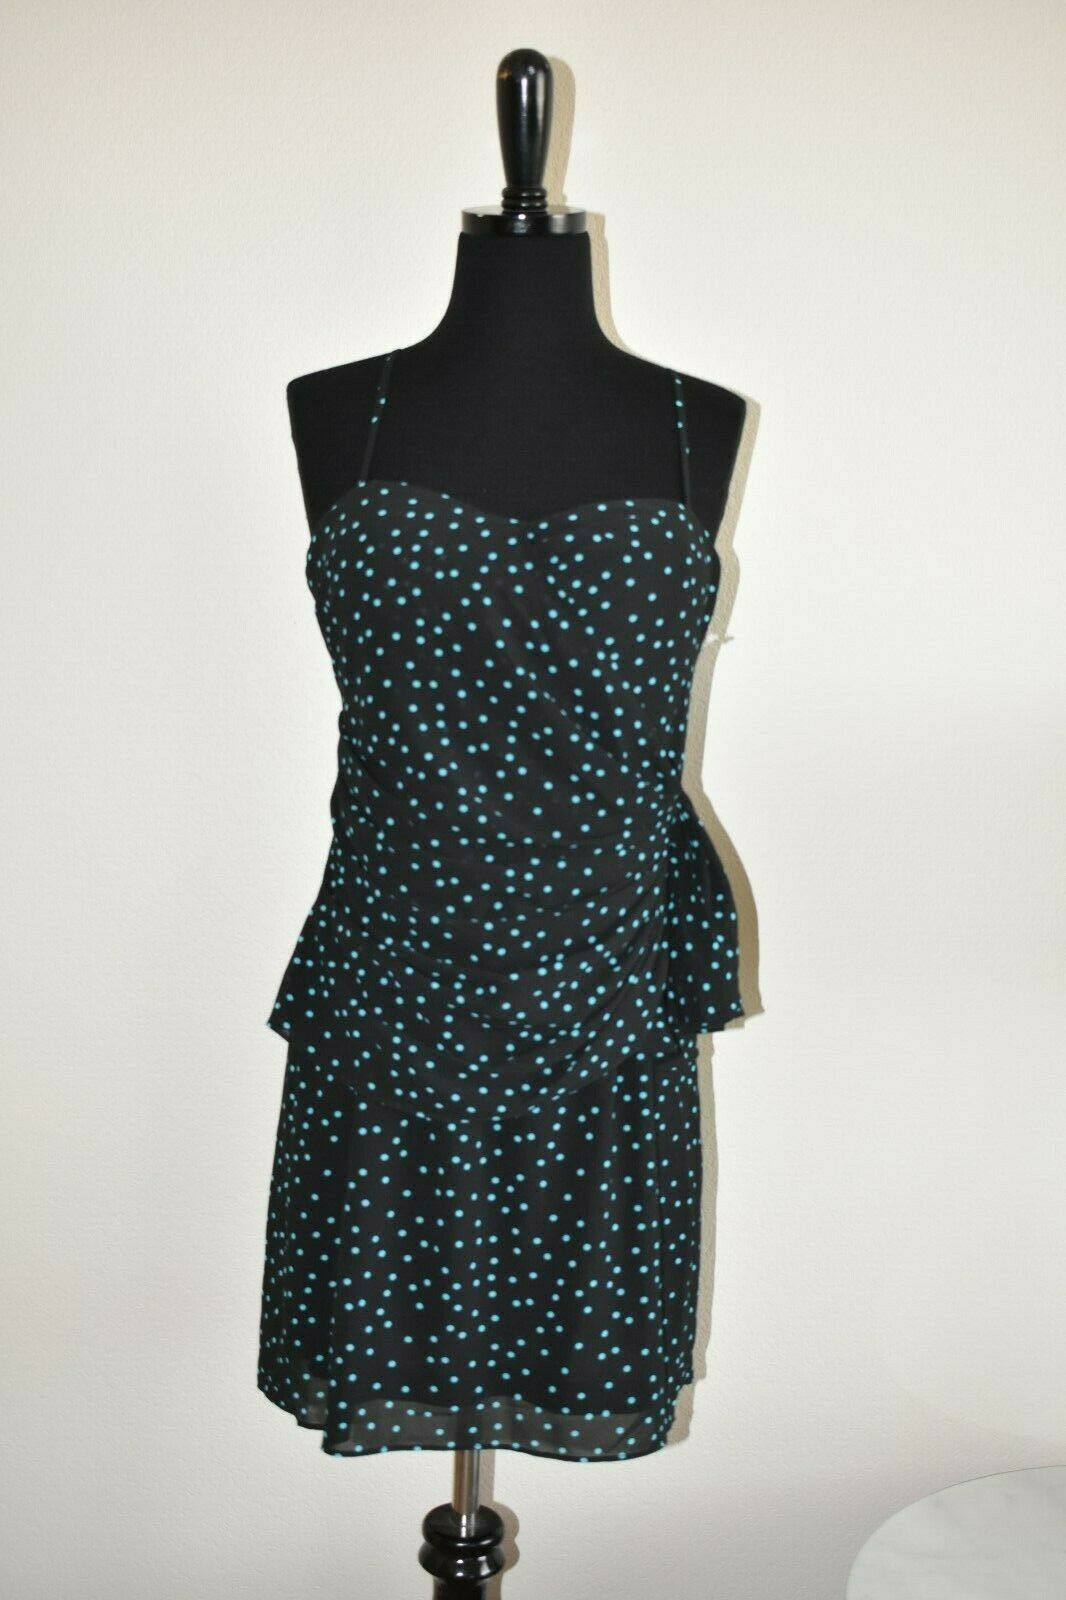 New NWT Forever 21 Black Turquoise Polka Dot Knee Length Dress Size M Medium